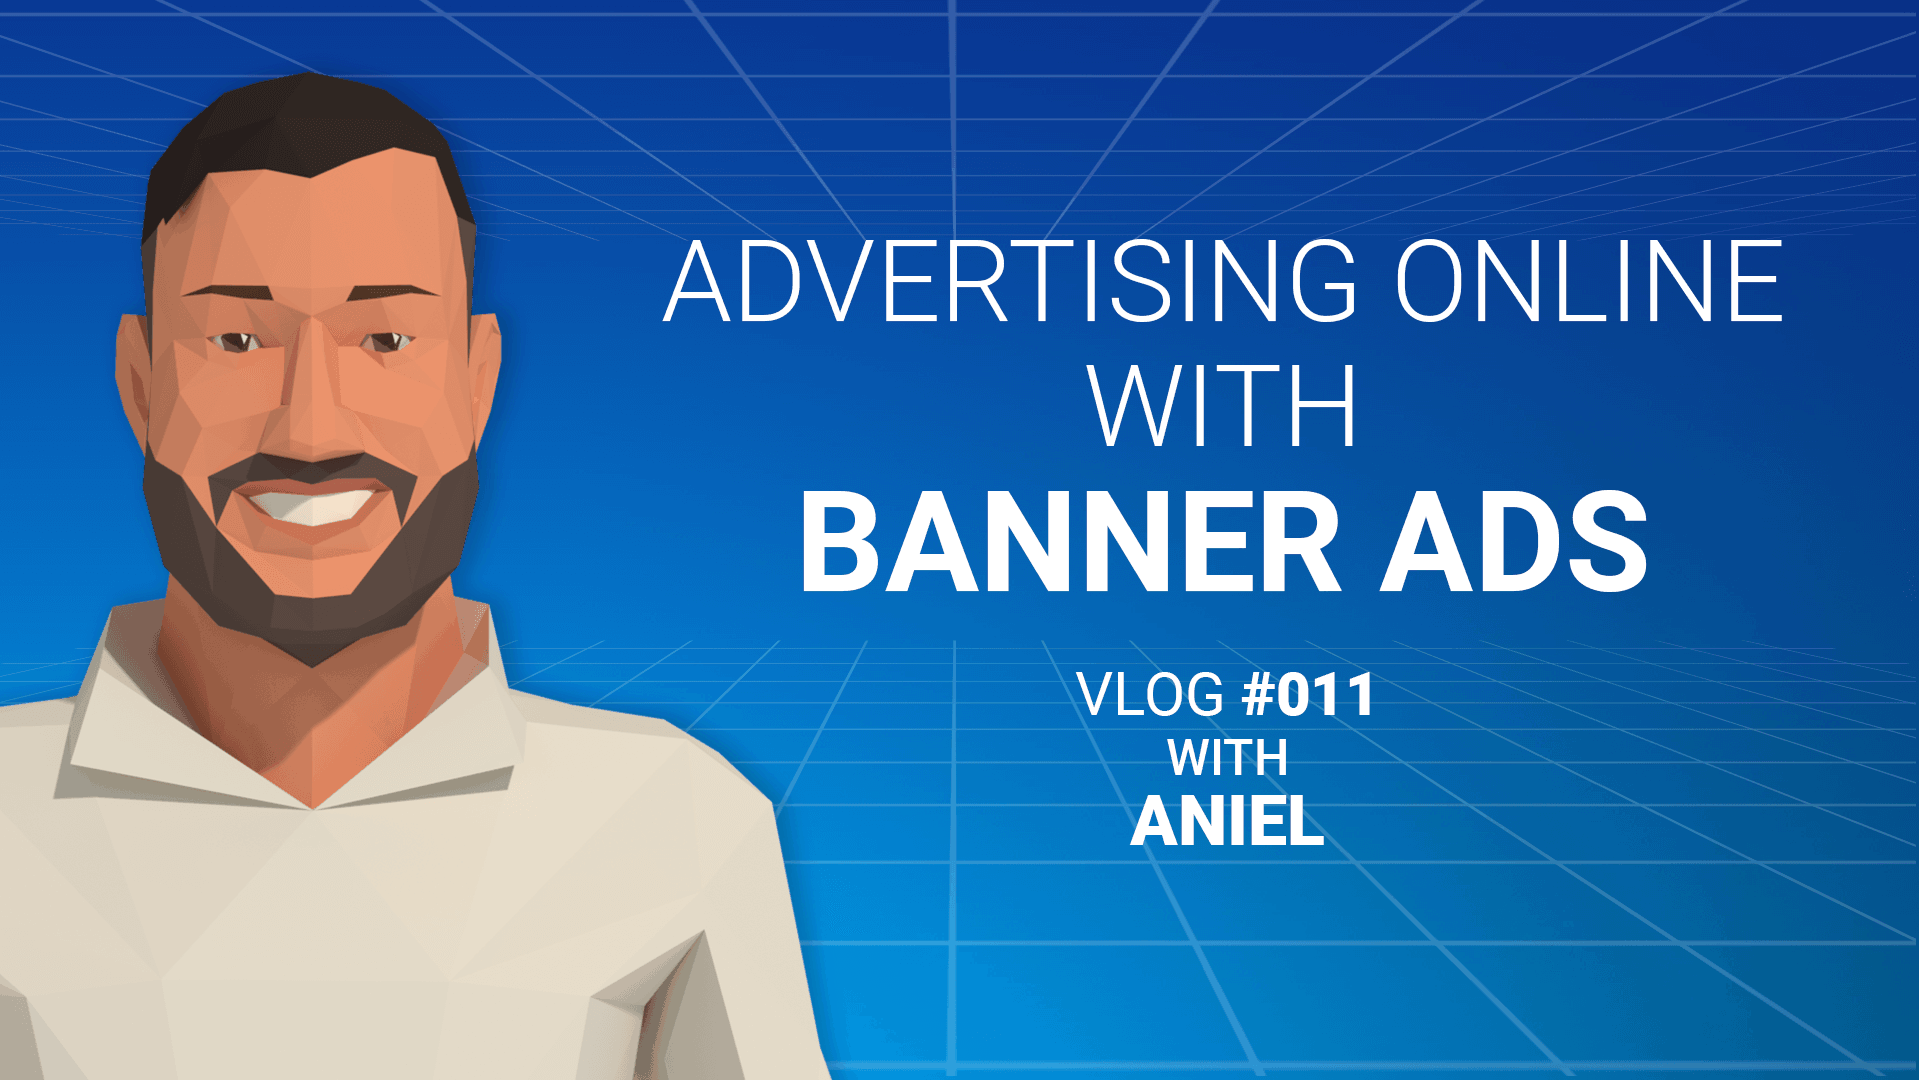 Advertising online with banner ads